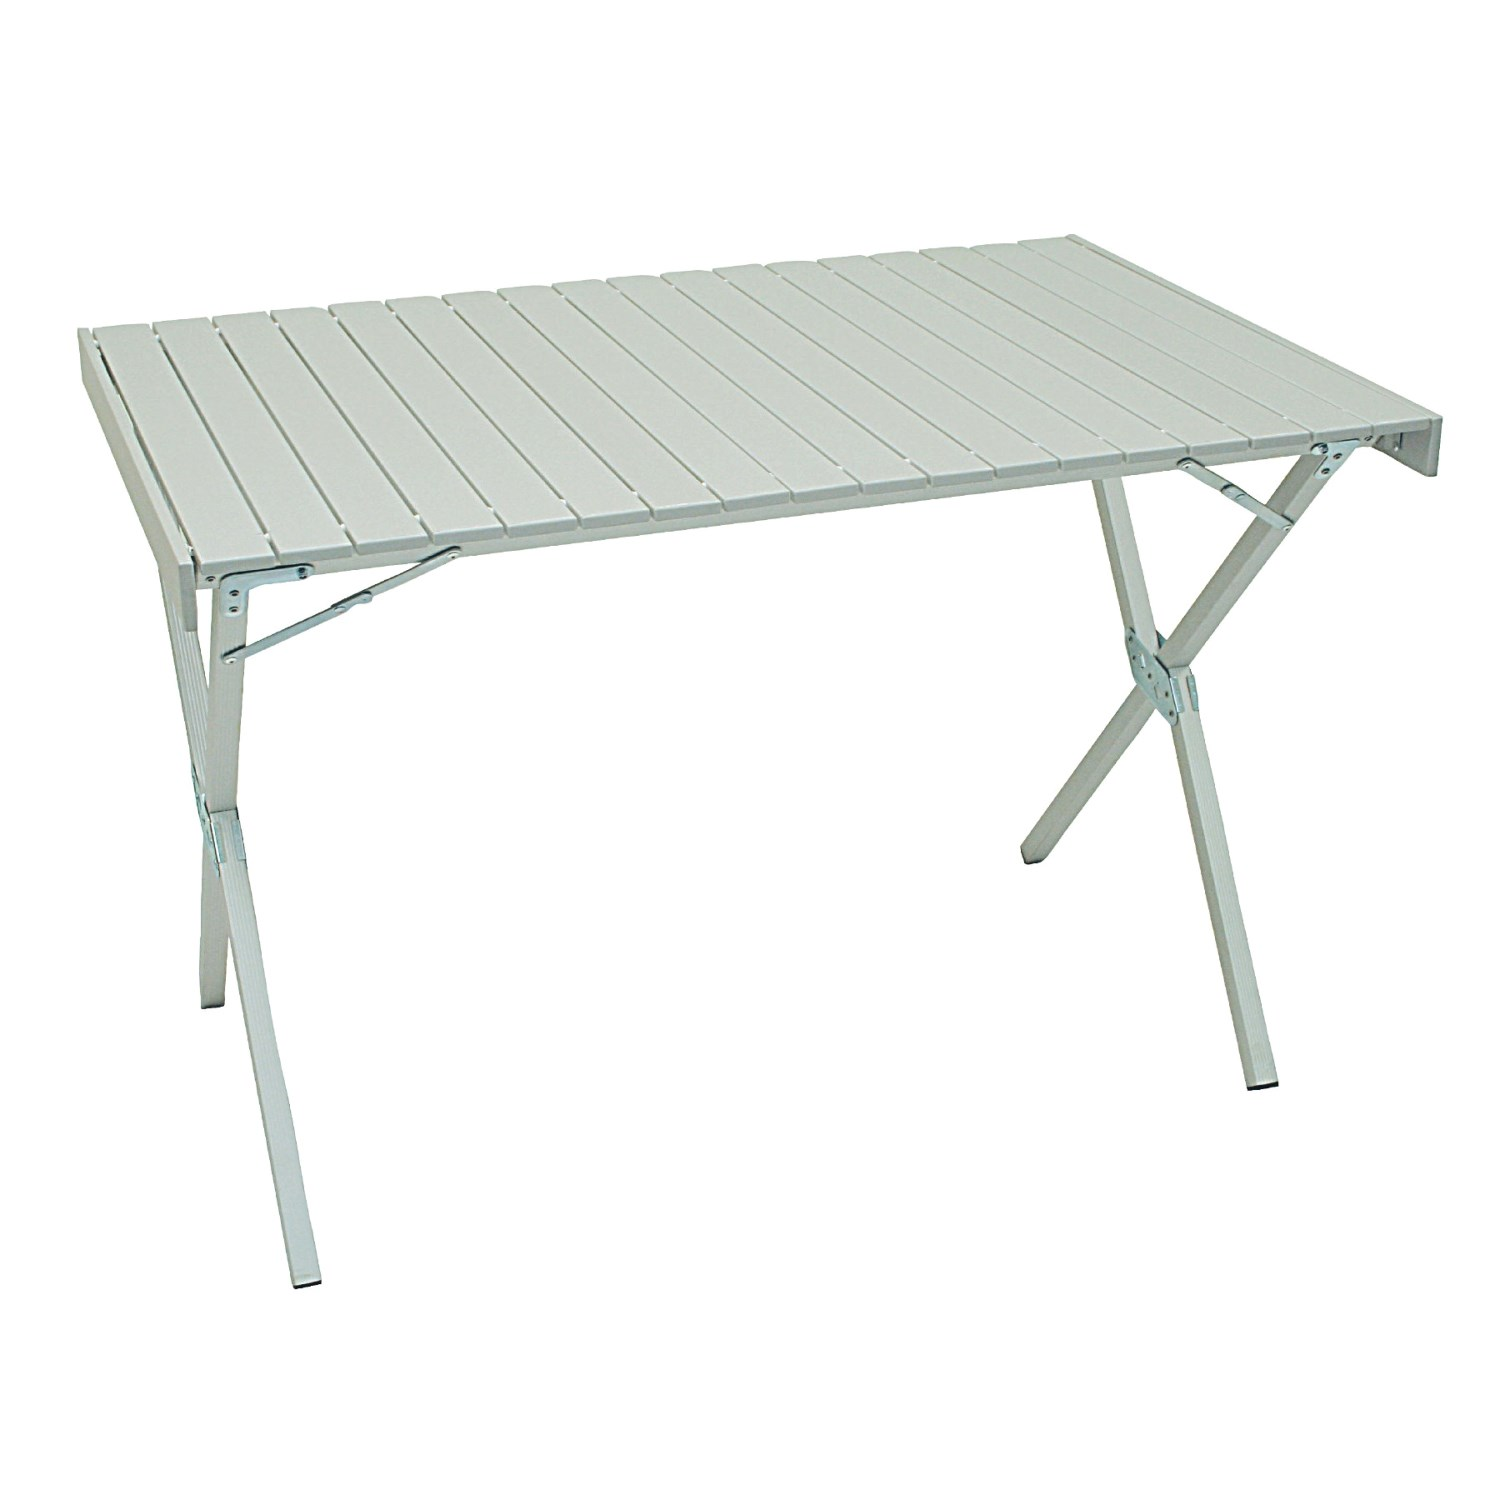 ALPS Mountaineering Portable Dining Table - XL in Silver ... - ALPS Mountaineering Portable Dining Table - XL - Save 41%